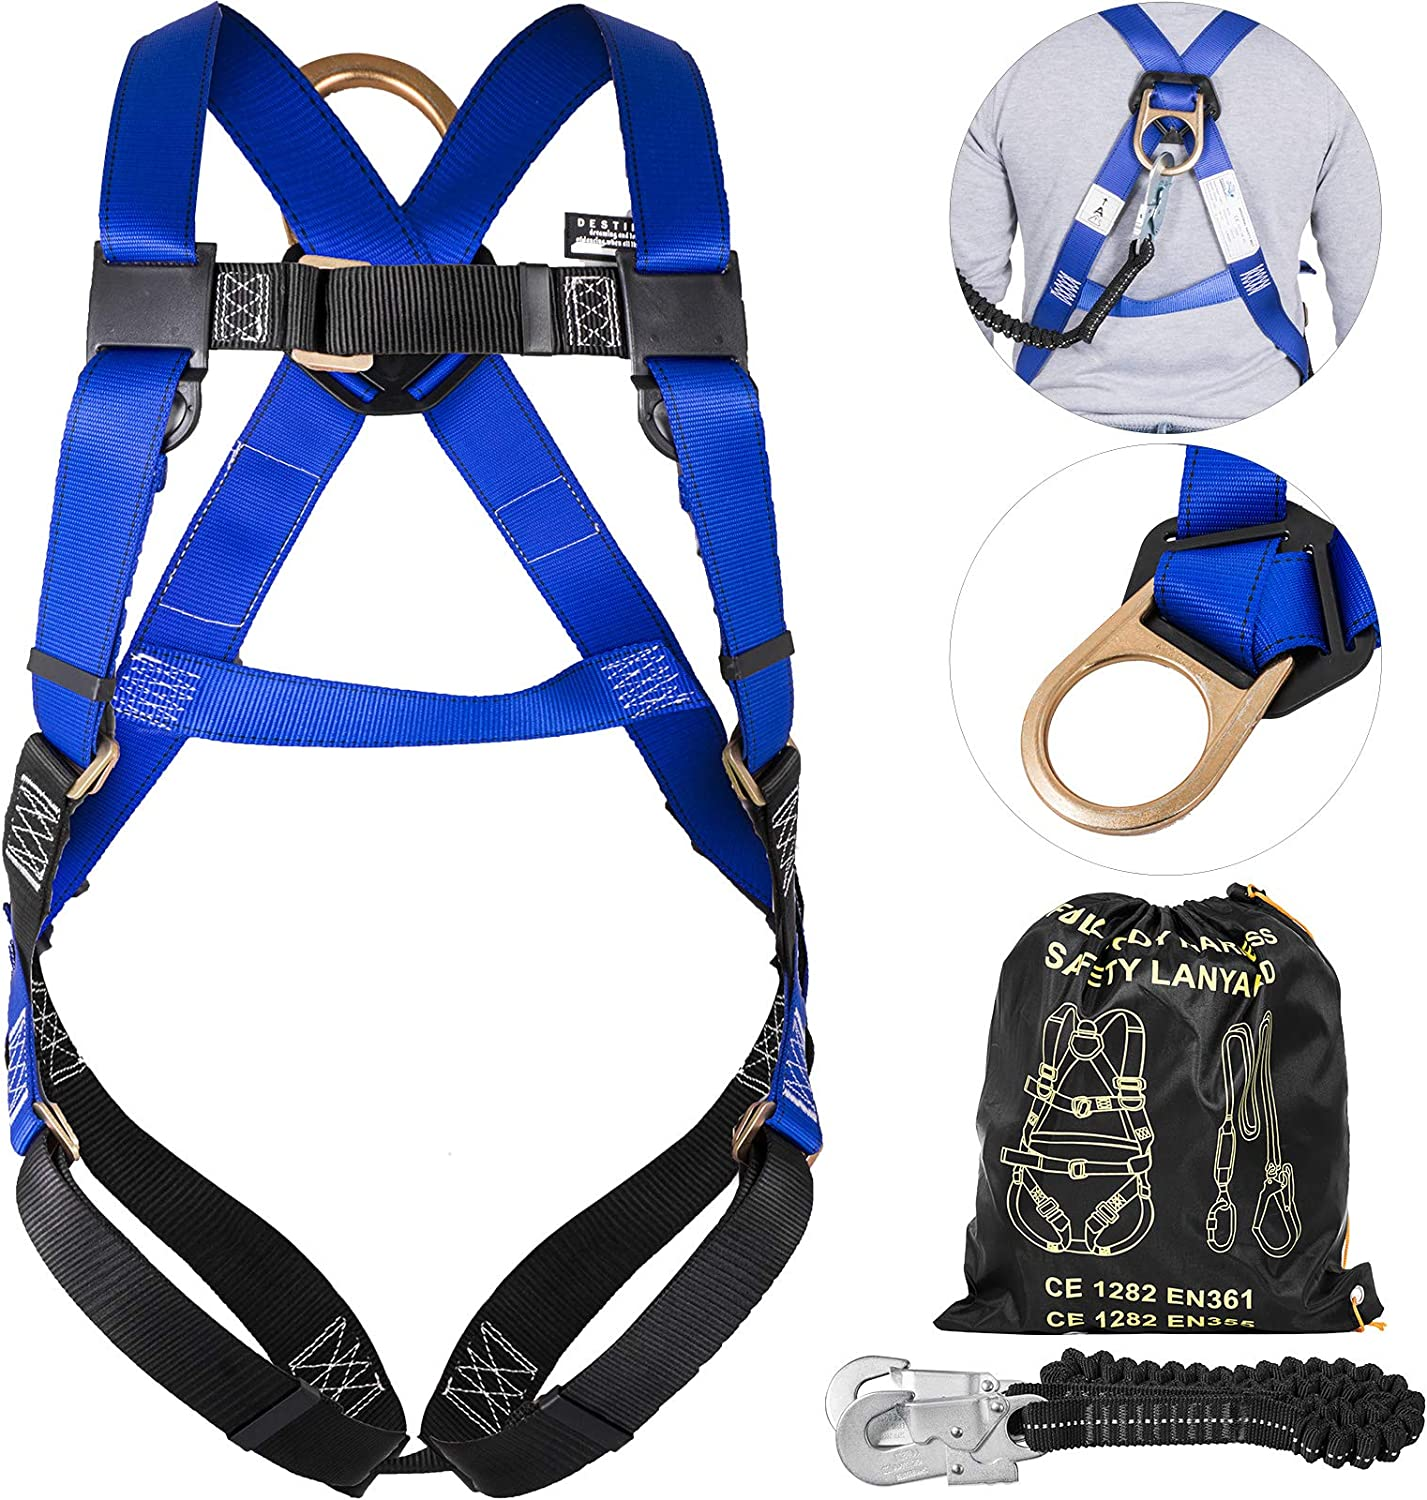 Happybuy 40% OFF Cheap Sale Fall Protection Full Max 87% OFF Body Harness Sho Construction with